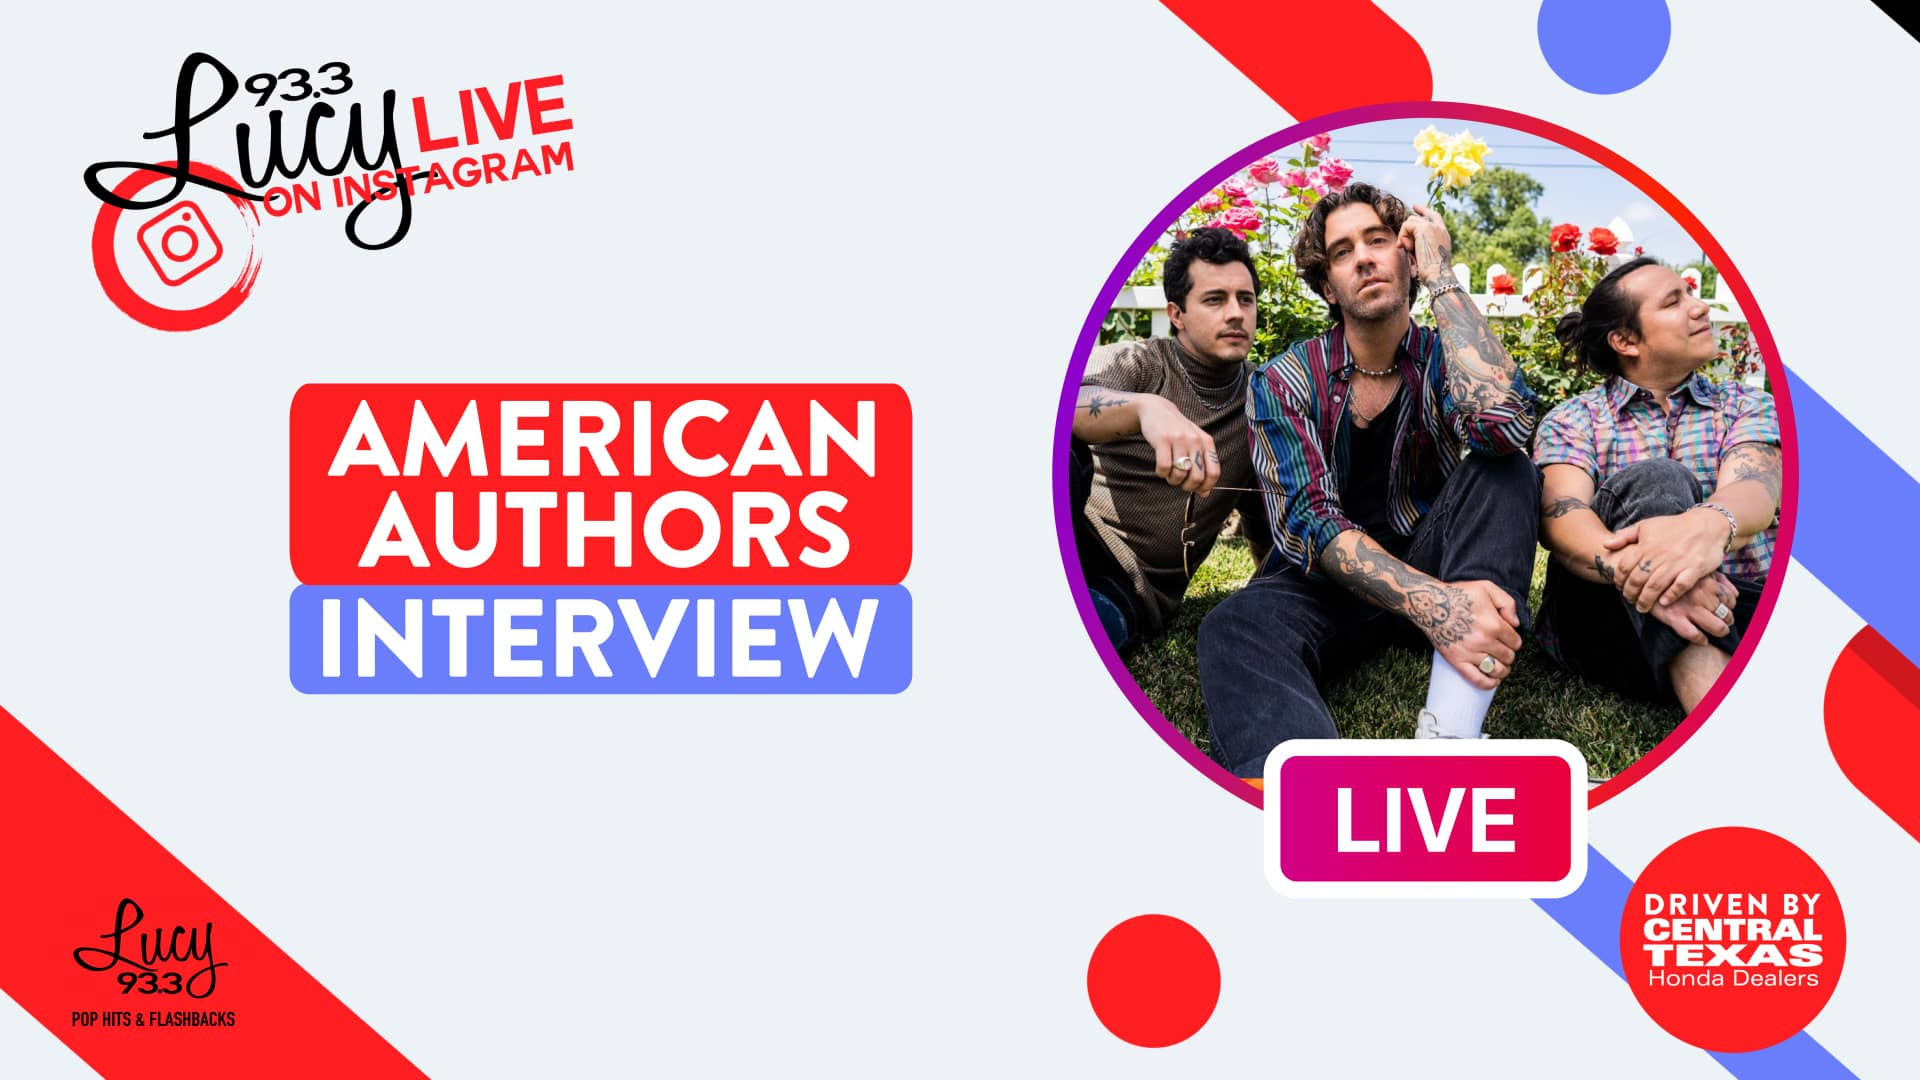 Lucy Live with American Authors